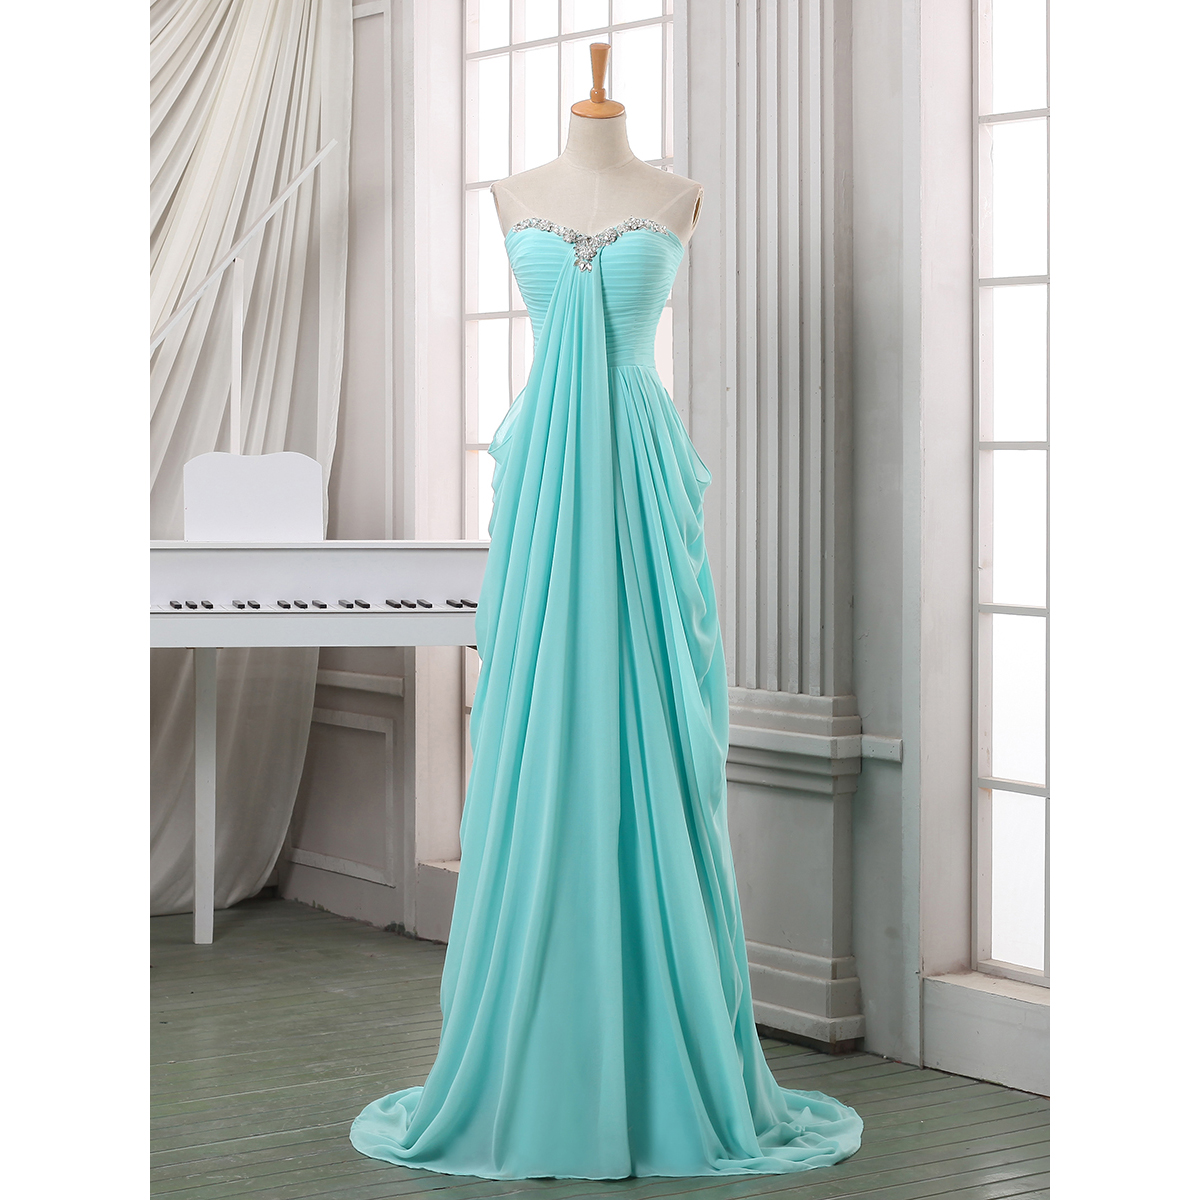 Crystal Sweetheart Ruched Long Prom Dress, A-line Chiffon Floor ...